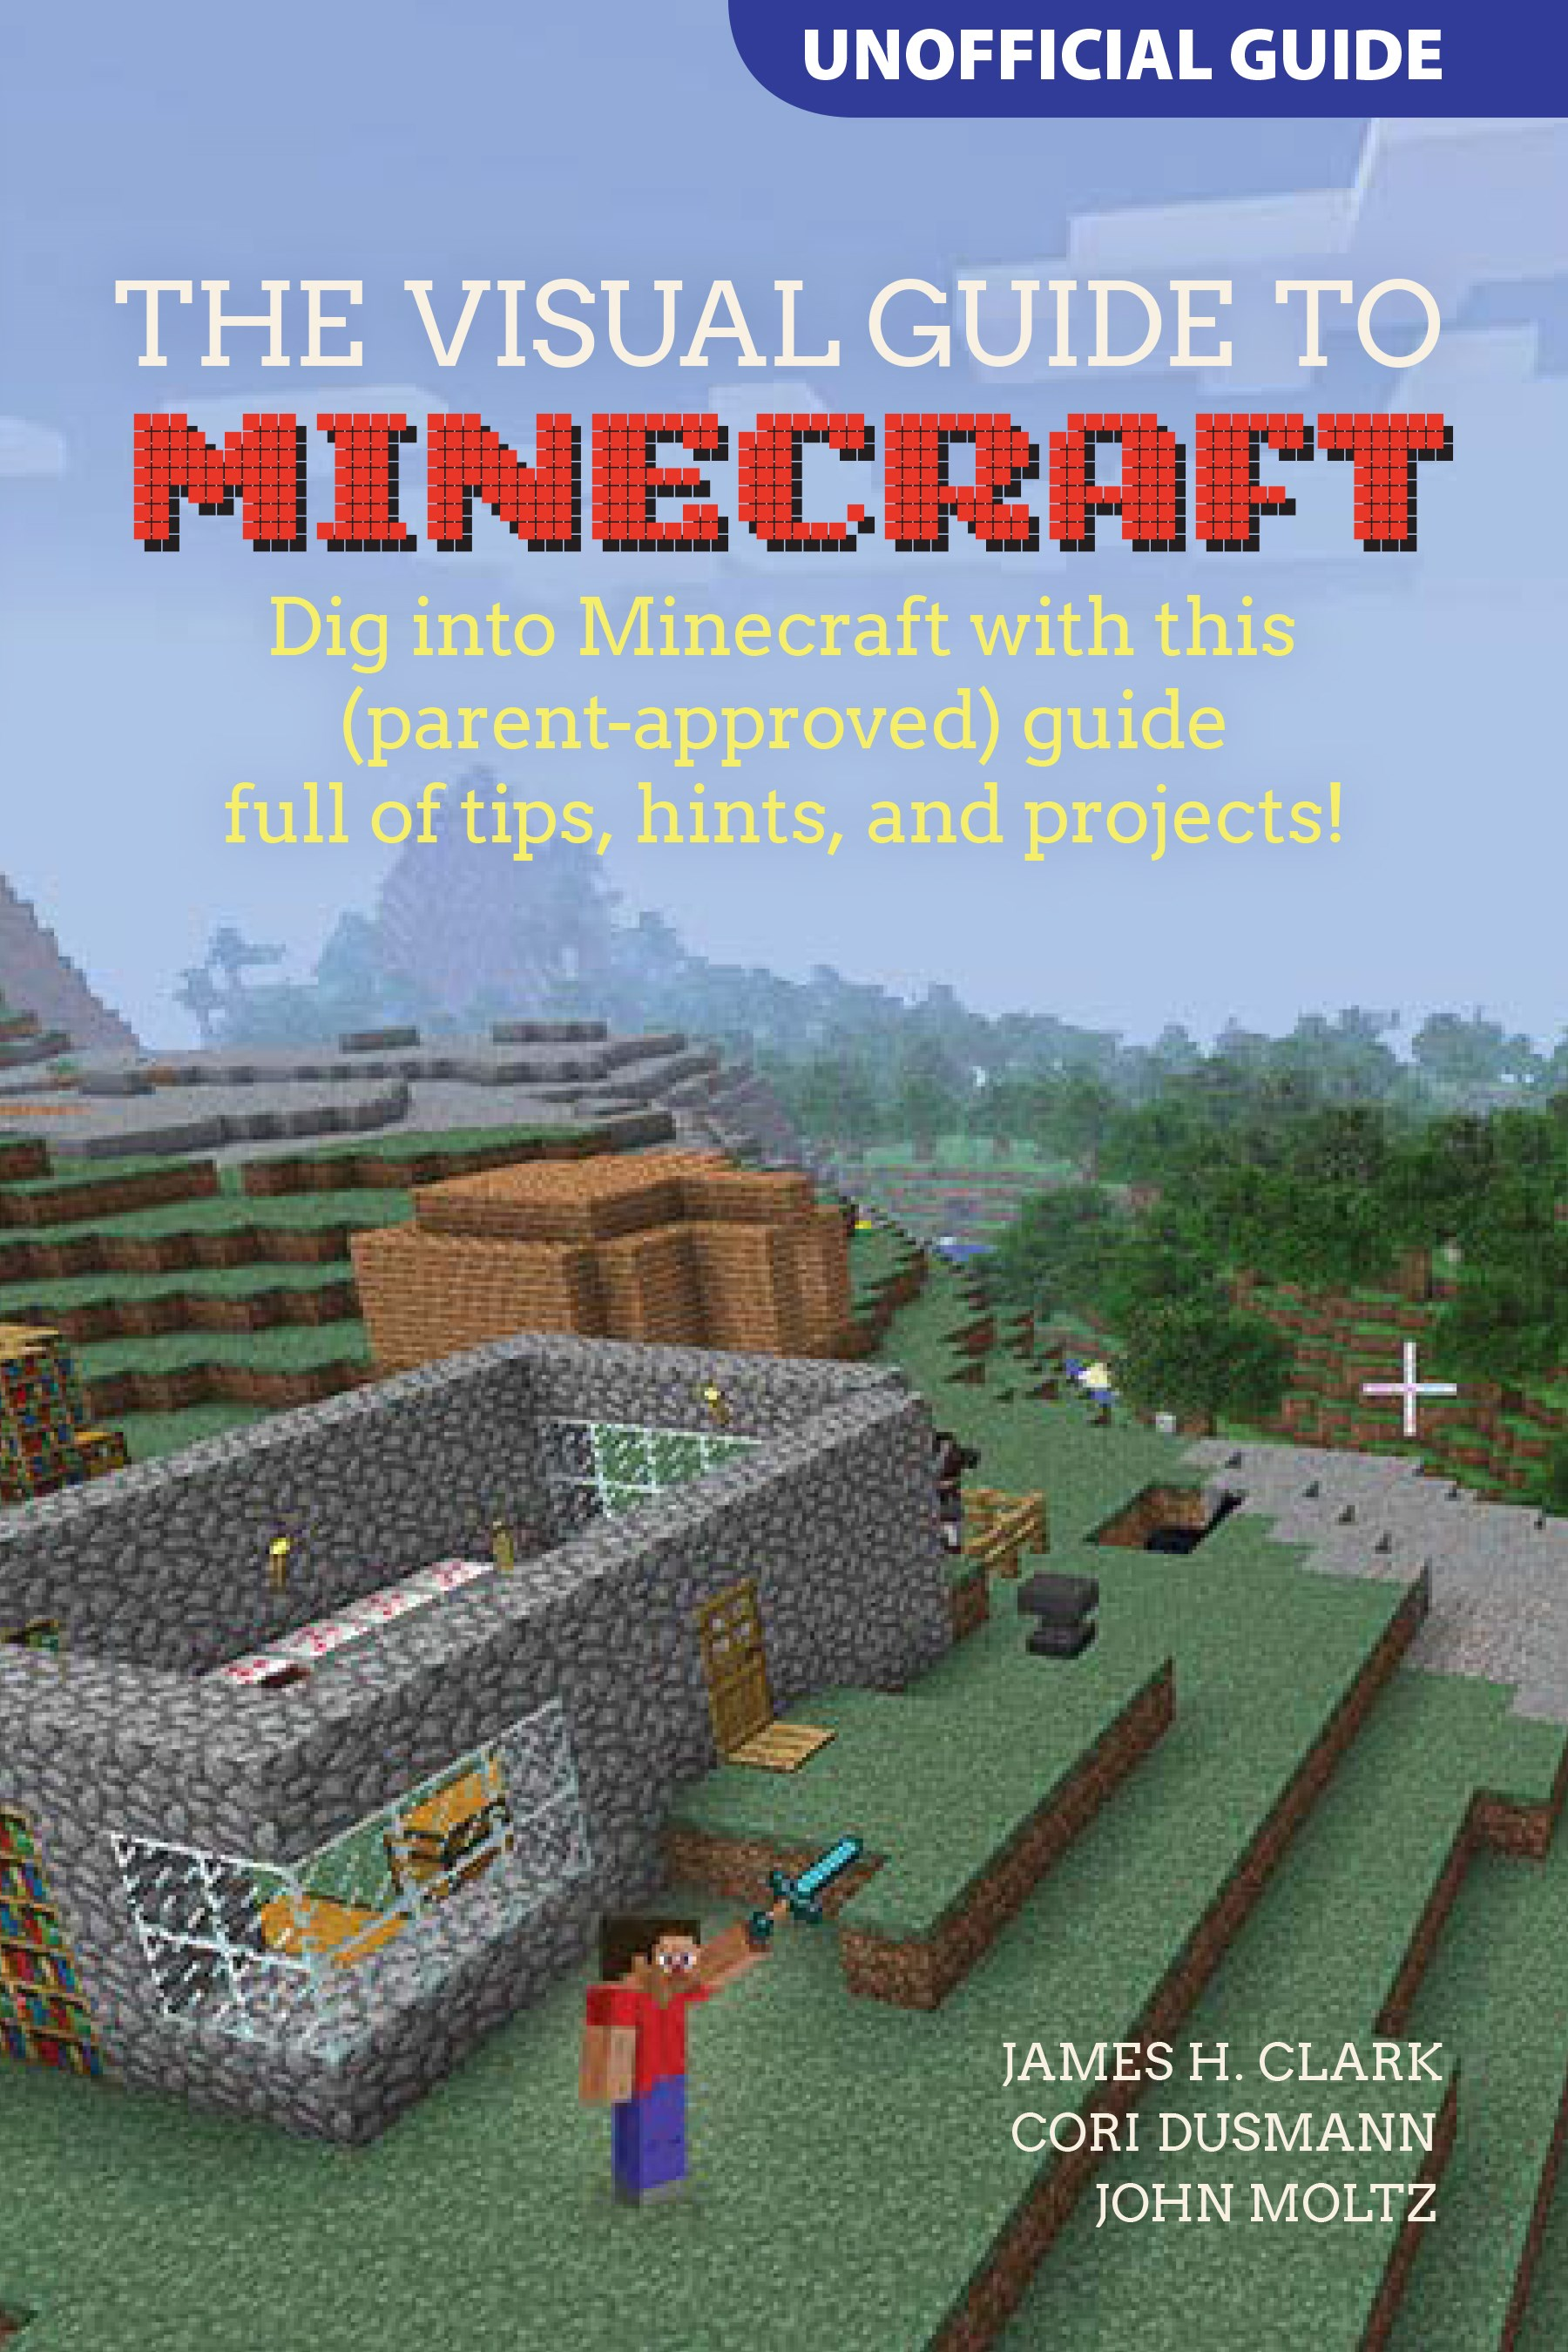 Visual Guide to Minecraft, The: Dig into Minecraft with this (parent-approved) guide full of tips, hints, and projects!